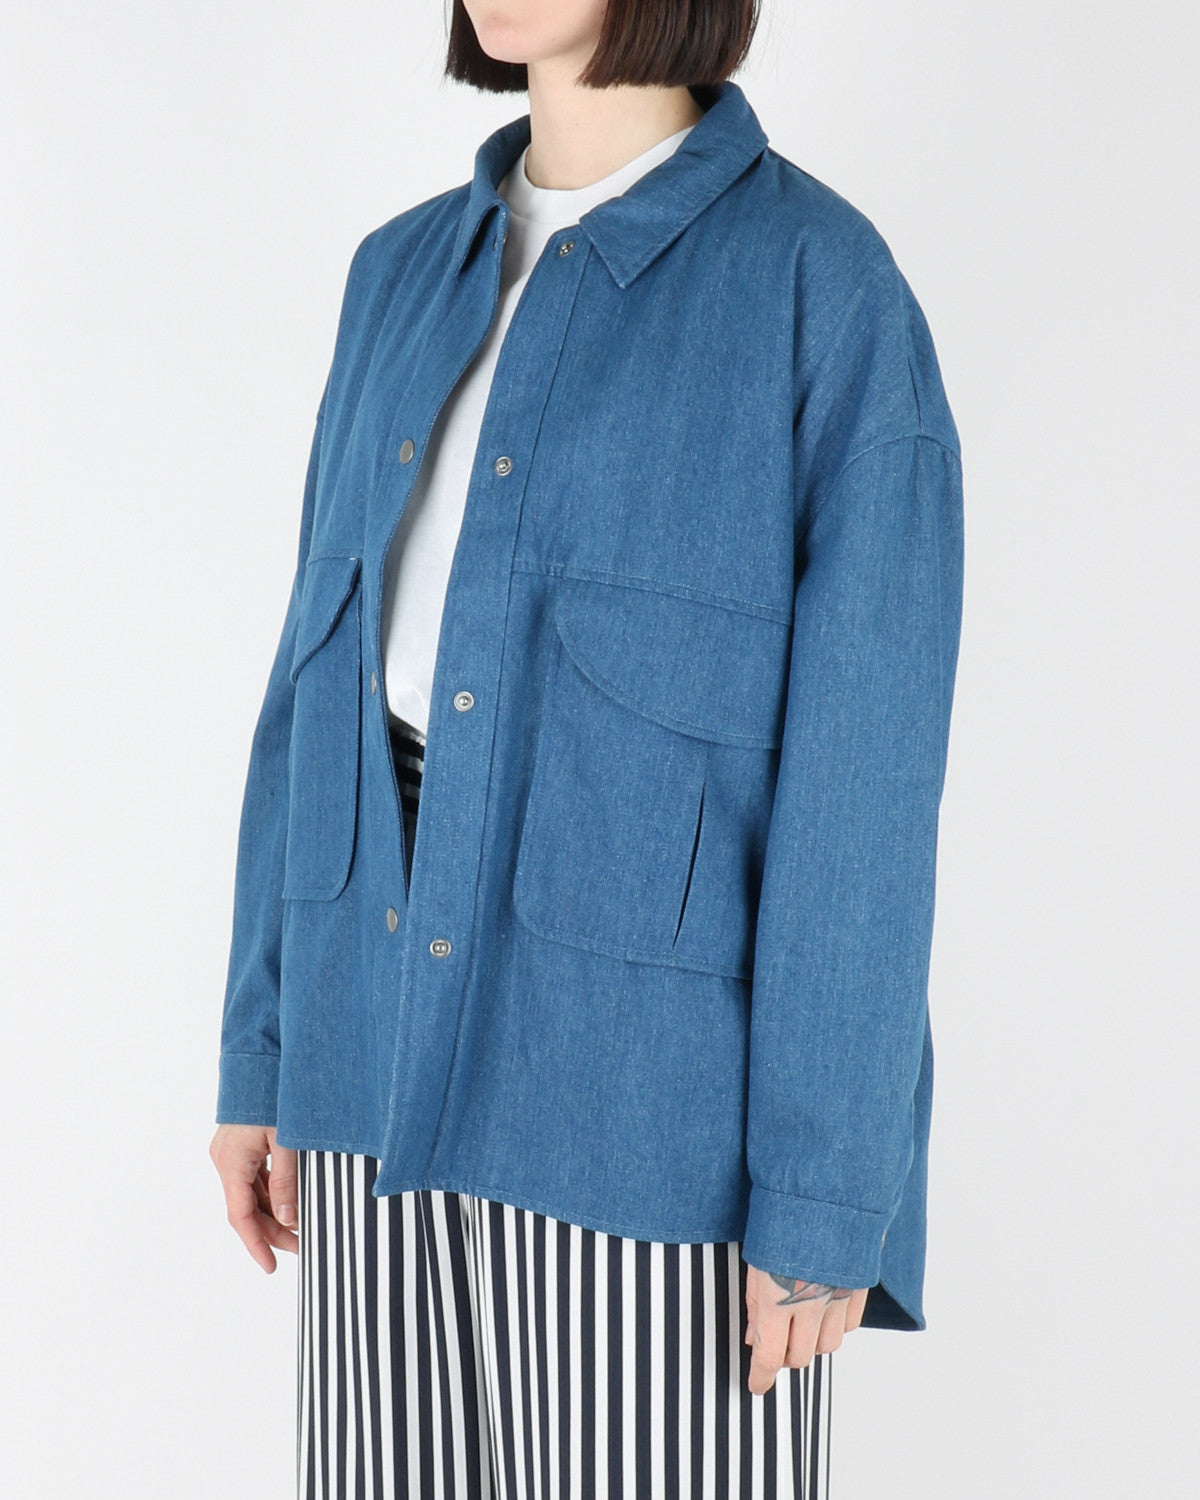 Jacket Light 77037, light blue